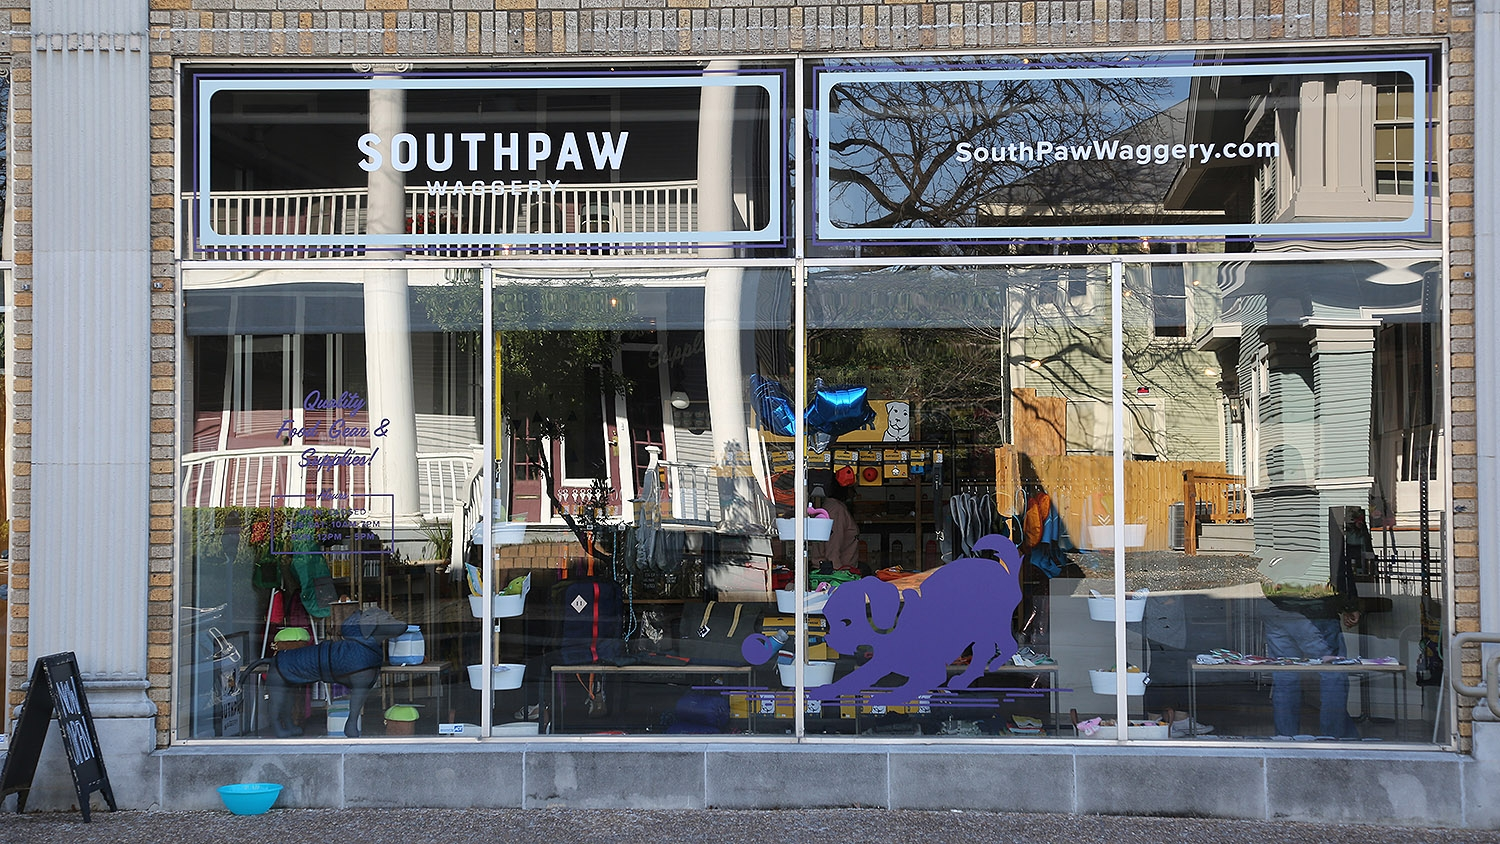 SouthPaw Waggery is located at the Cadillac Lofts building, 317 Lexington Ave., Suite 4. <b><em>Photo by Ben Olivo | Heron</em></b>